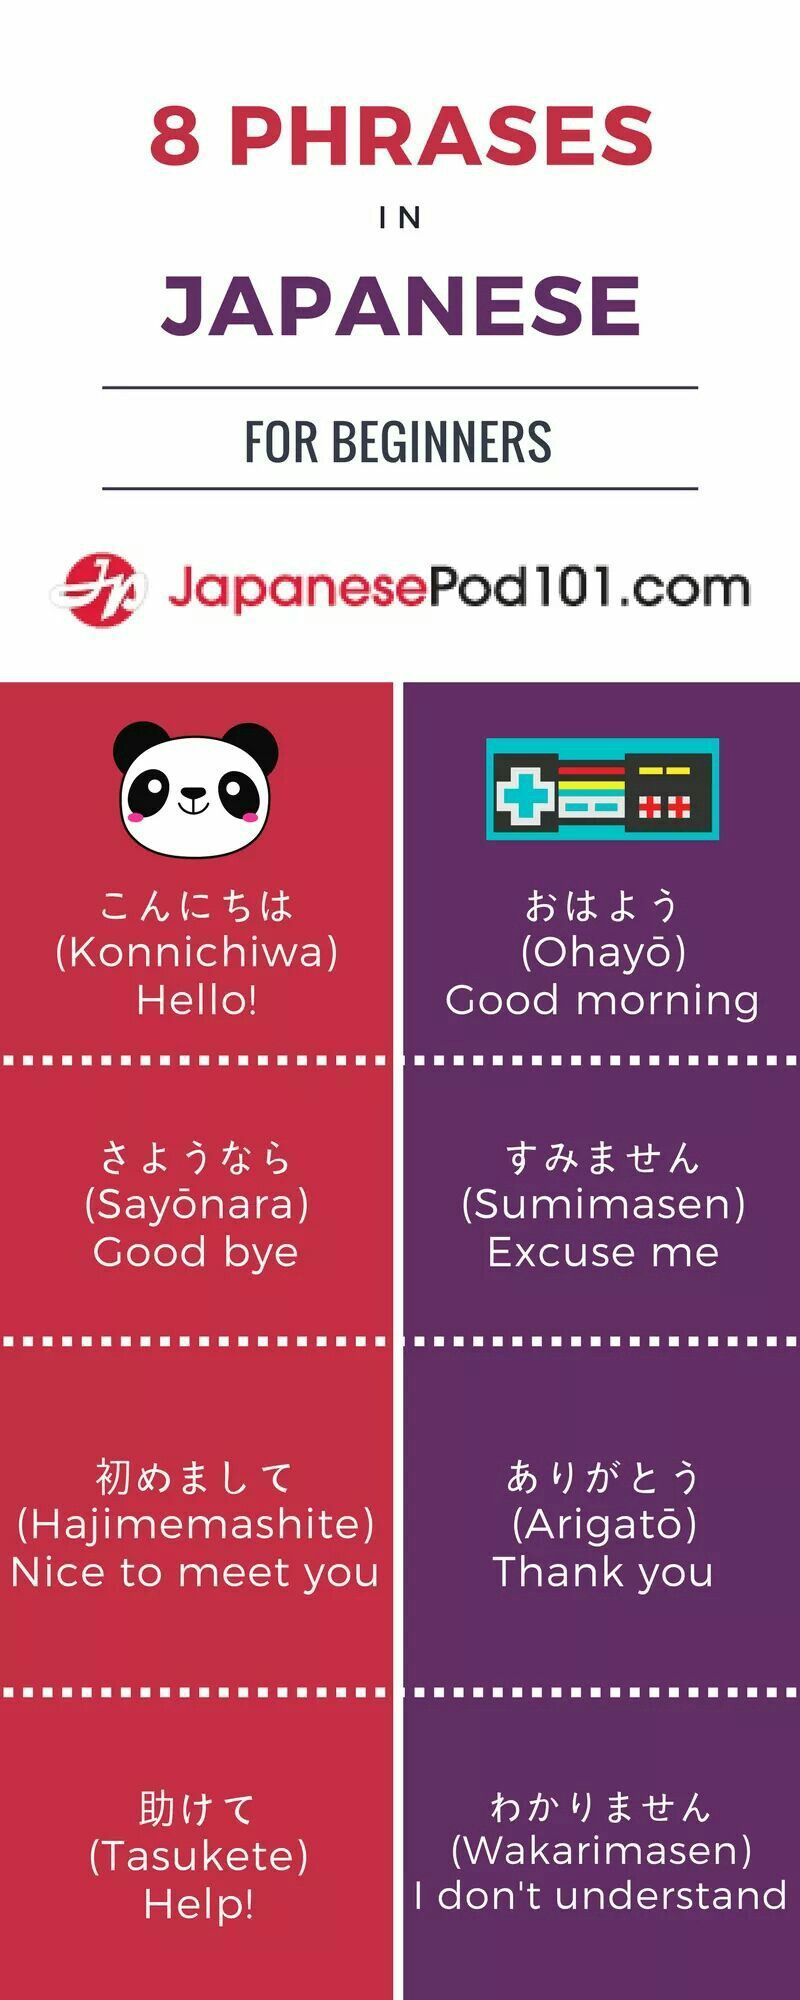 8 Japanese Phrases For Beginners From Japanesepod101 Japaneselanguage Japanese Phrases Japanese Words Japanese Language Learning